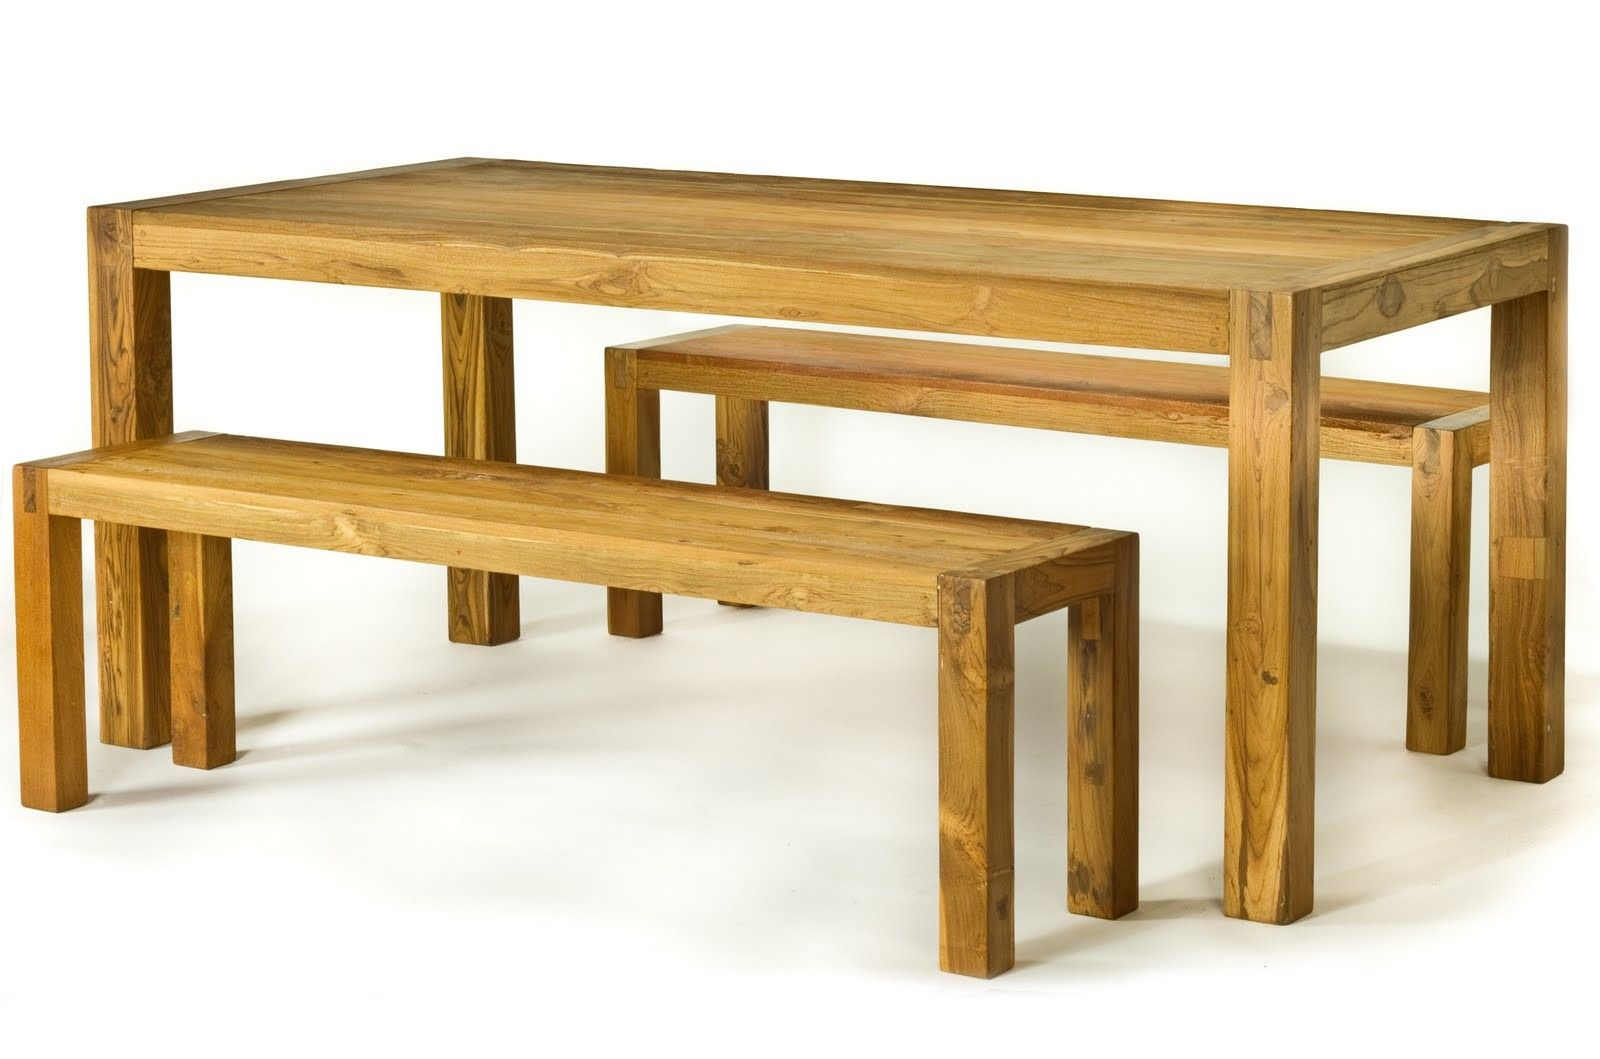 wooden for breakfast legs than ideas longer living furniture leather bench dining kitchen lowes room spaces table